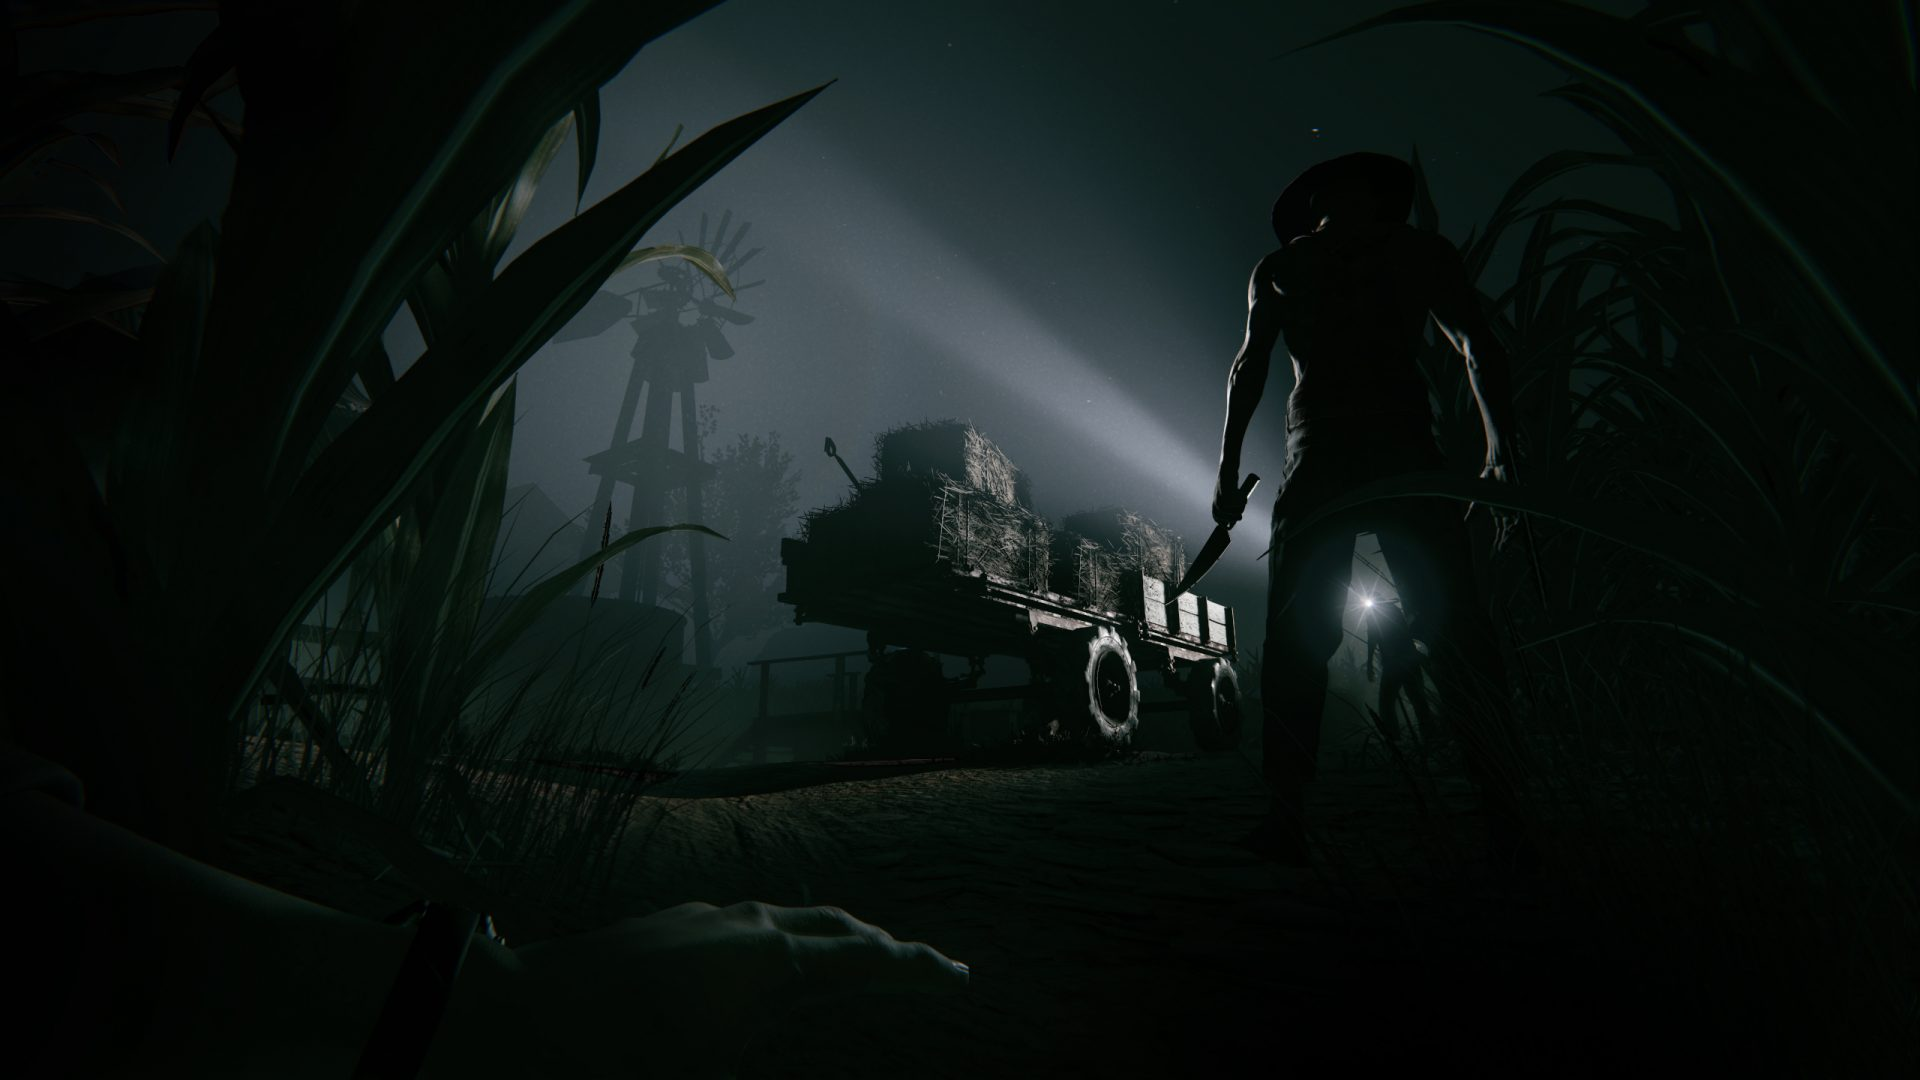 For some players, they will want to know how scary Outlast 2 is before they take the plunge.